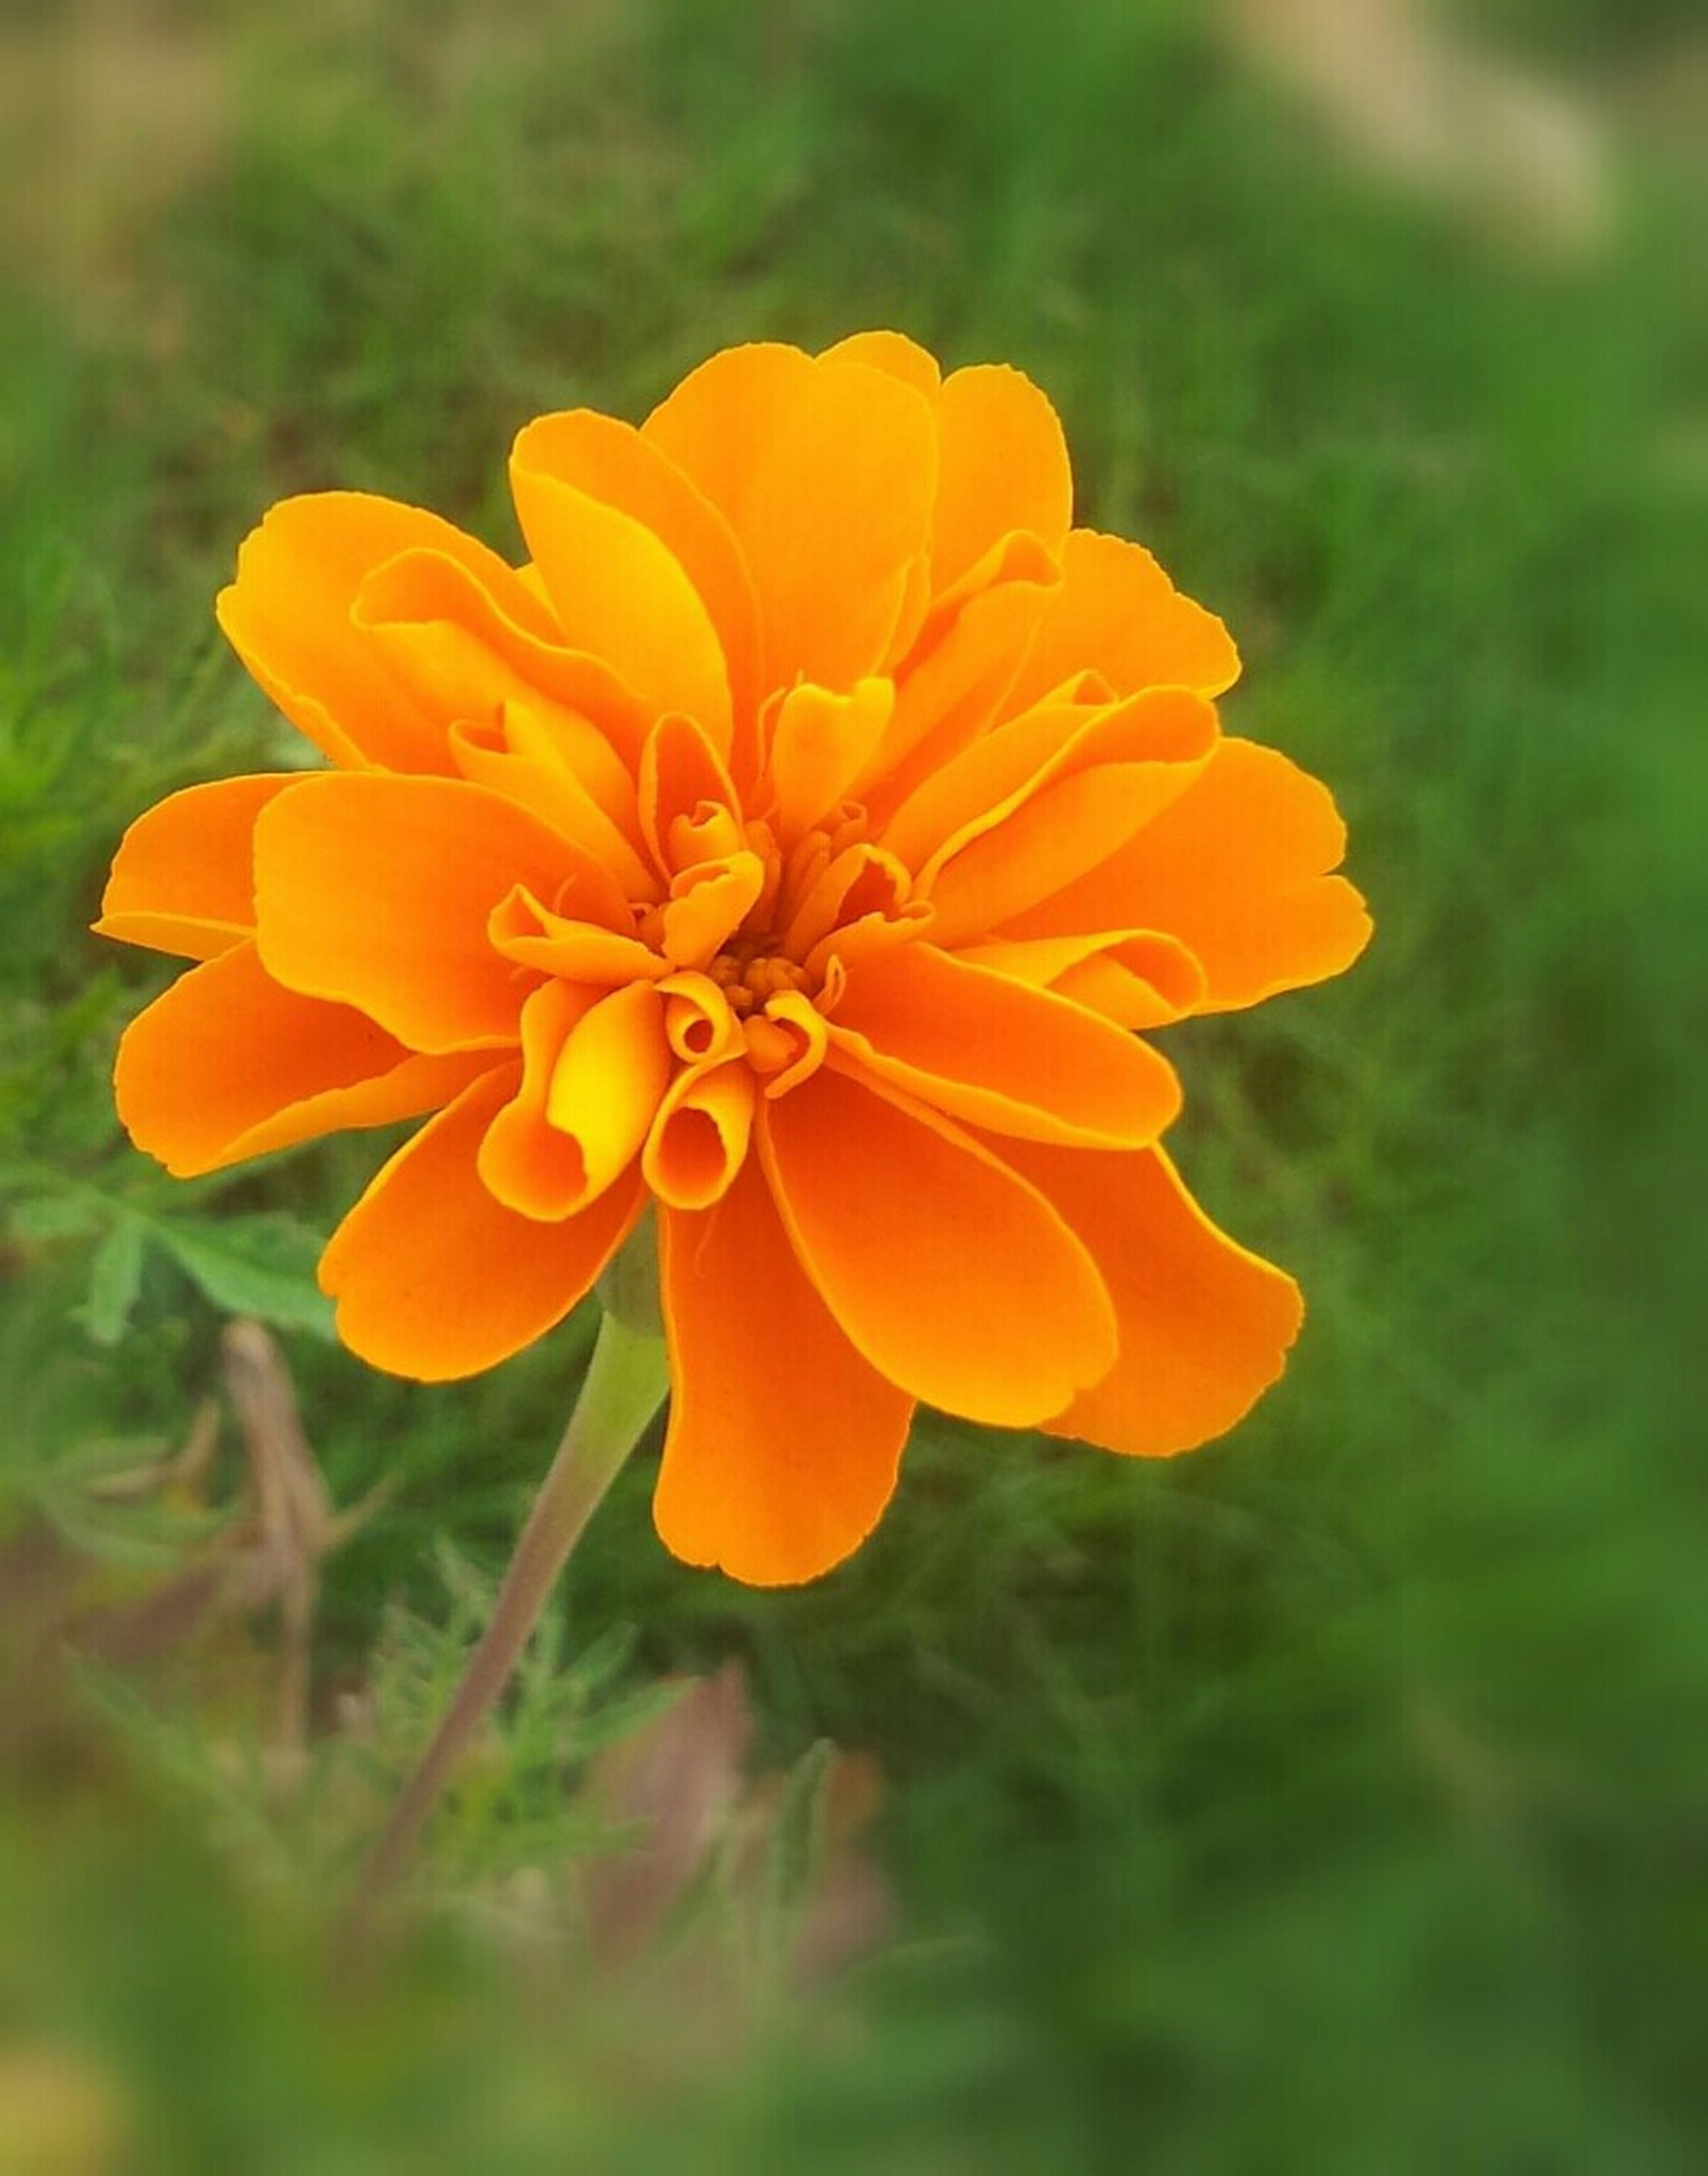 flower, petal, freshness, flower head, fragility, yellow, beauty in nature, growth, focus on foreground, close-up, blooming, nature, orange color, plant, single flower, in bloom, pollen, field, blossom, outdoors